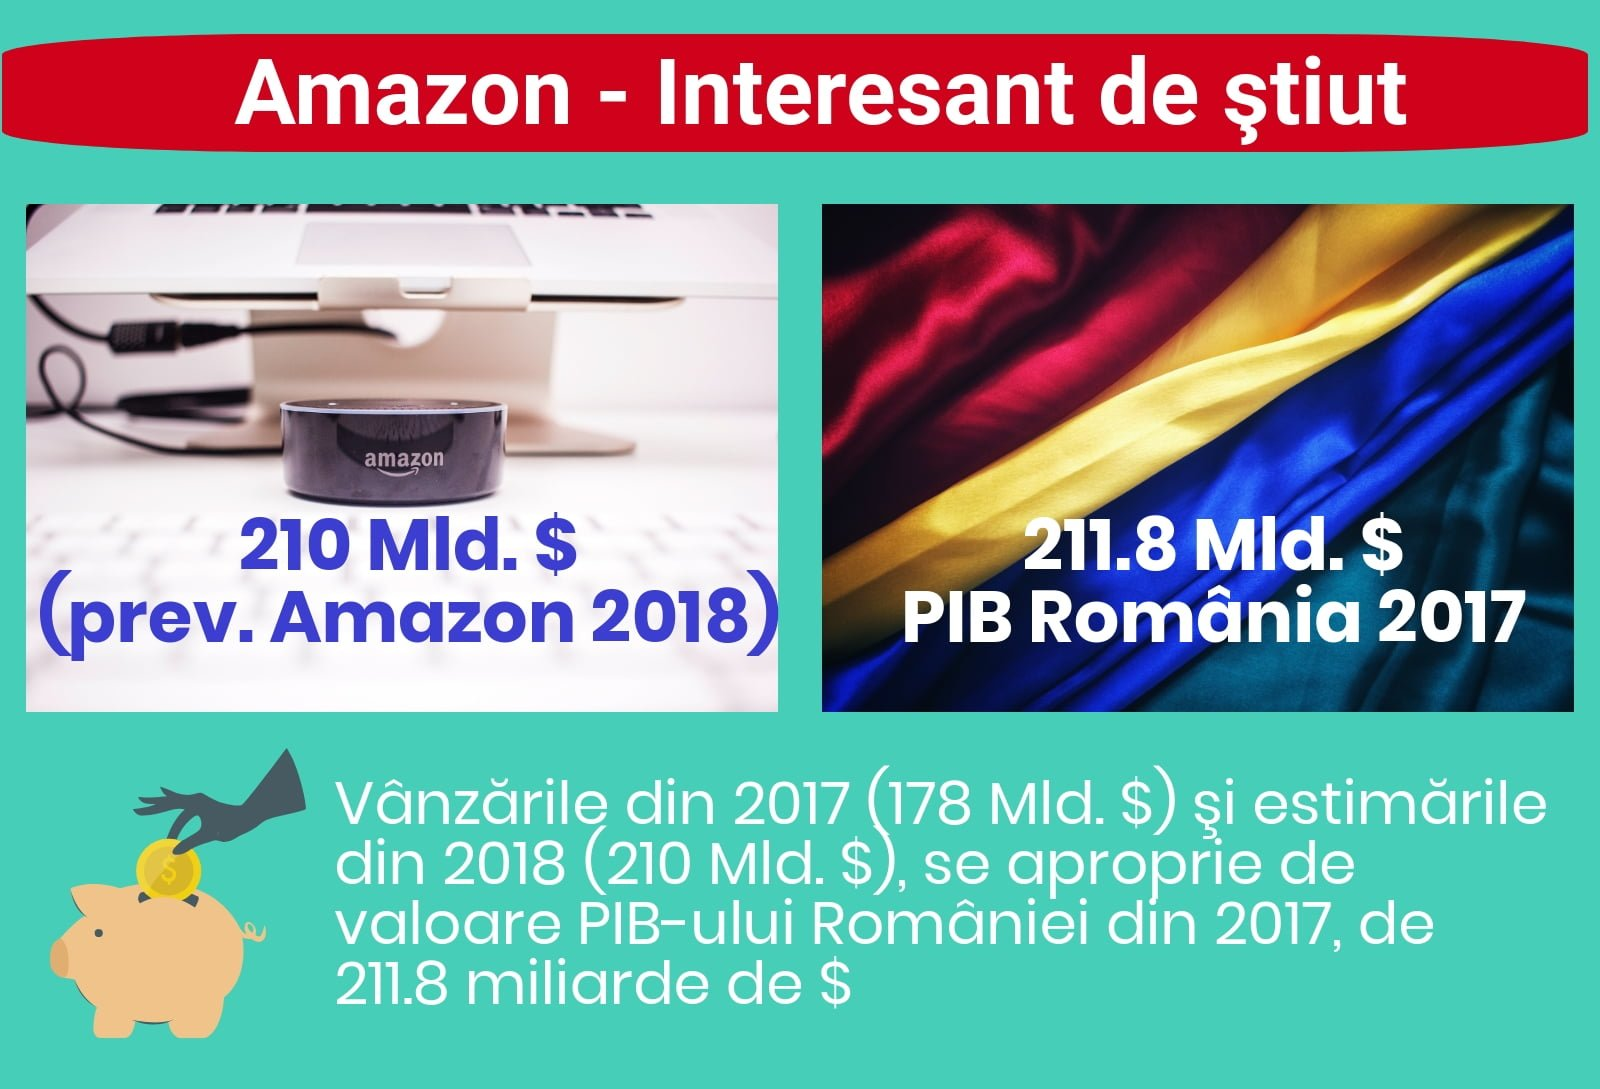 Amazonepedia - PIB Romania + Cifra afaceri Amazon